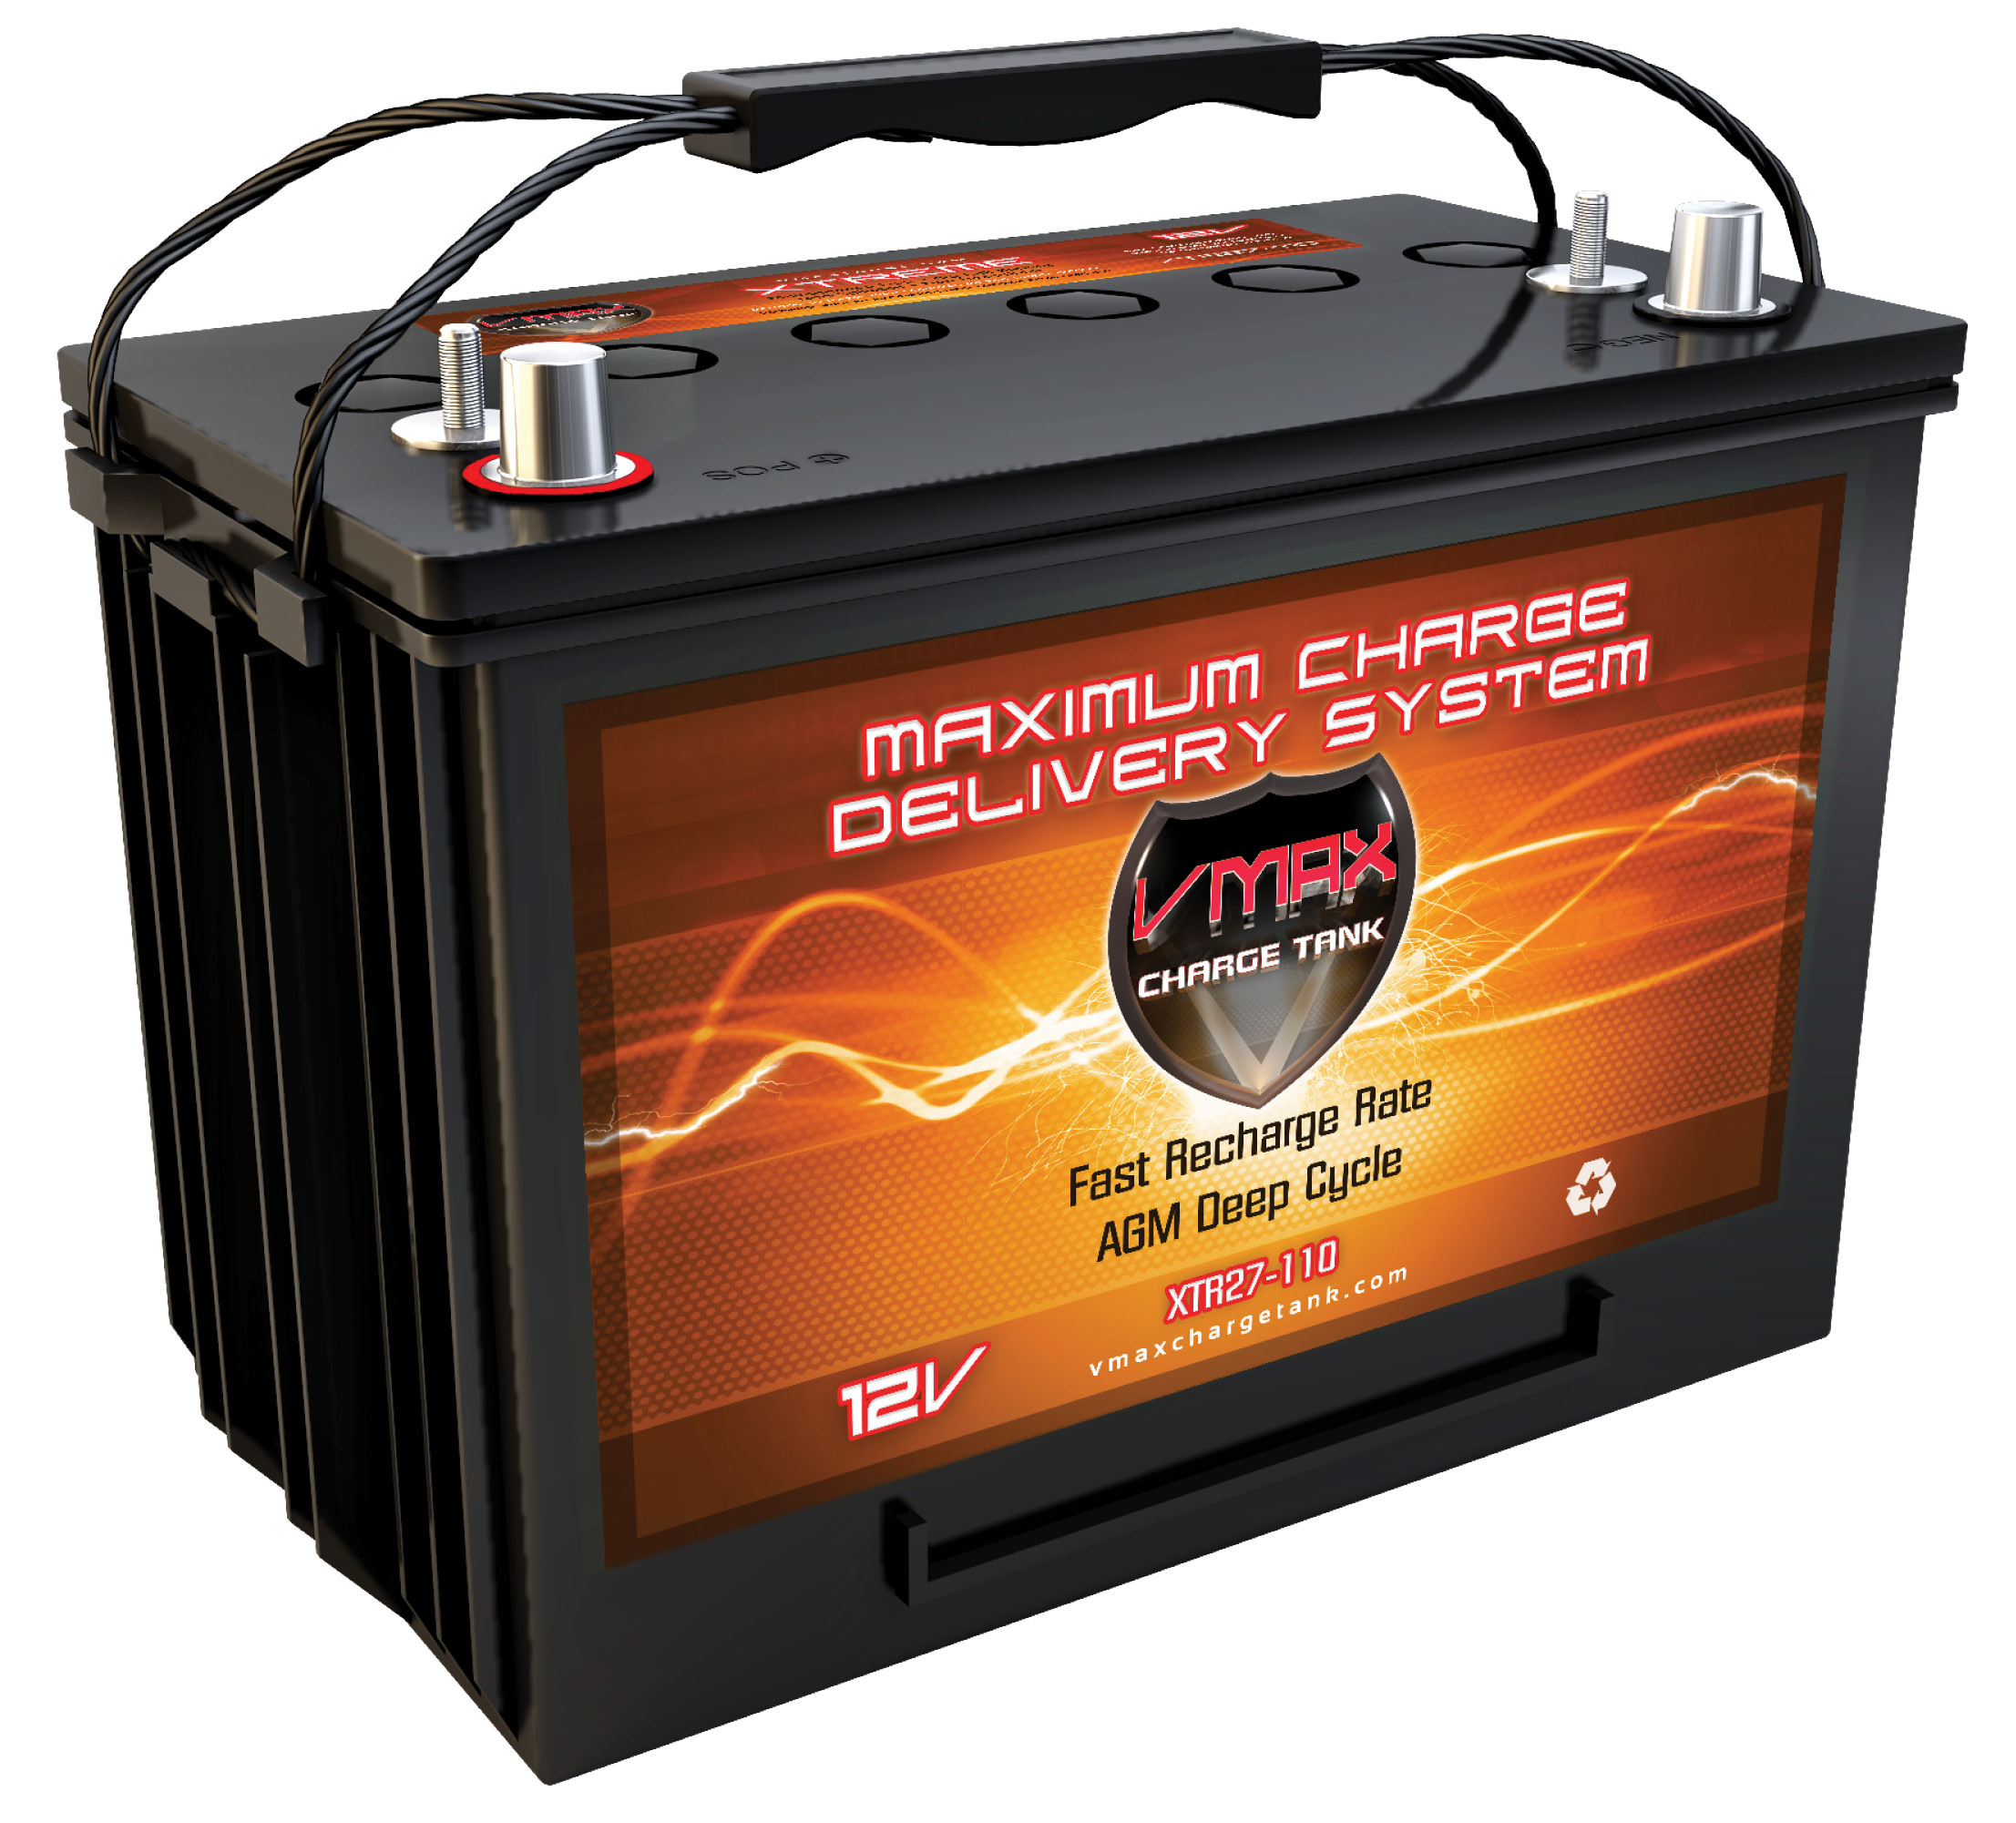 VMAX XTR27-110 12V 110Ah Group 27 AGM Deep Cycle Battery for golf carts req.